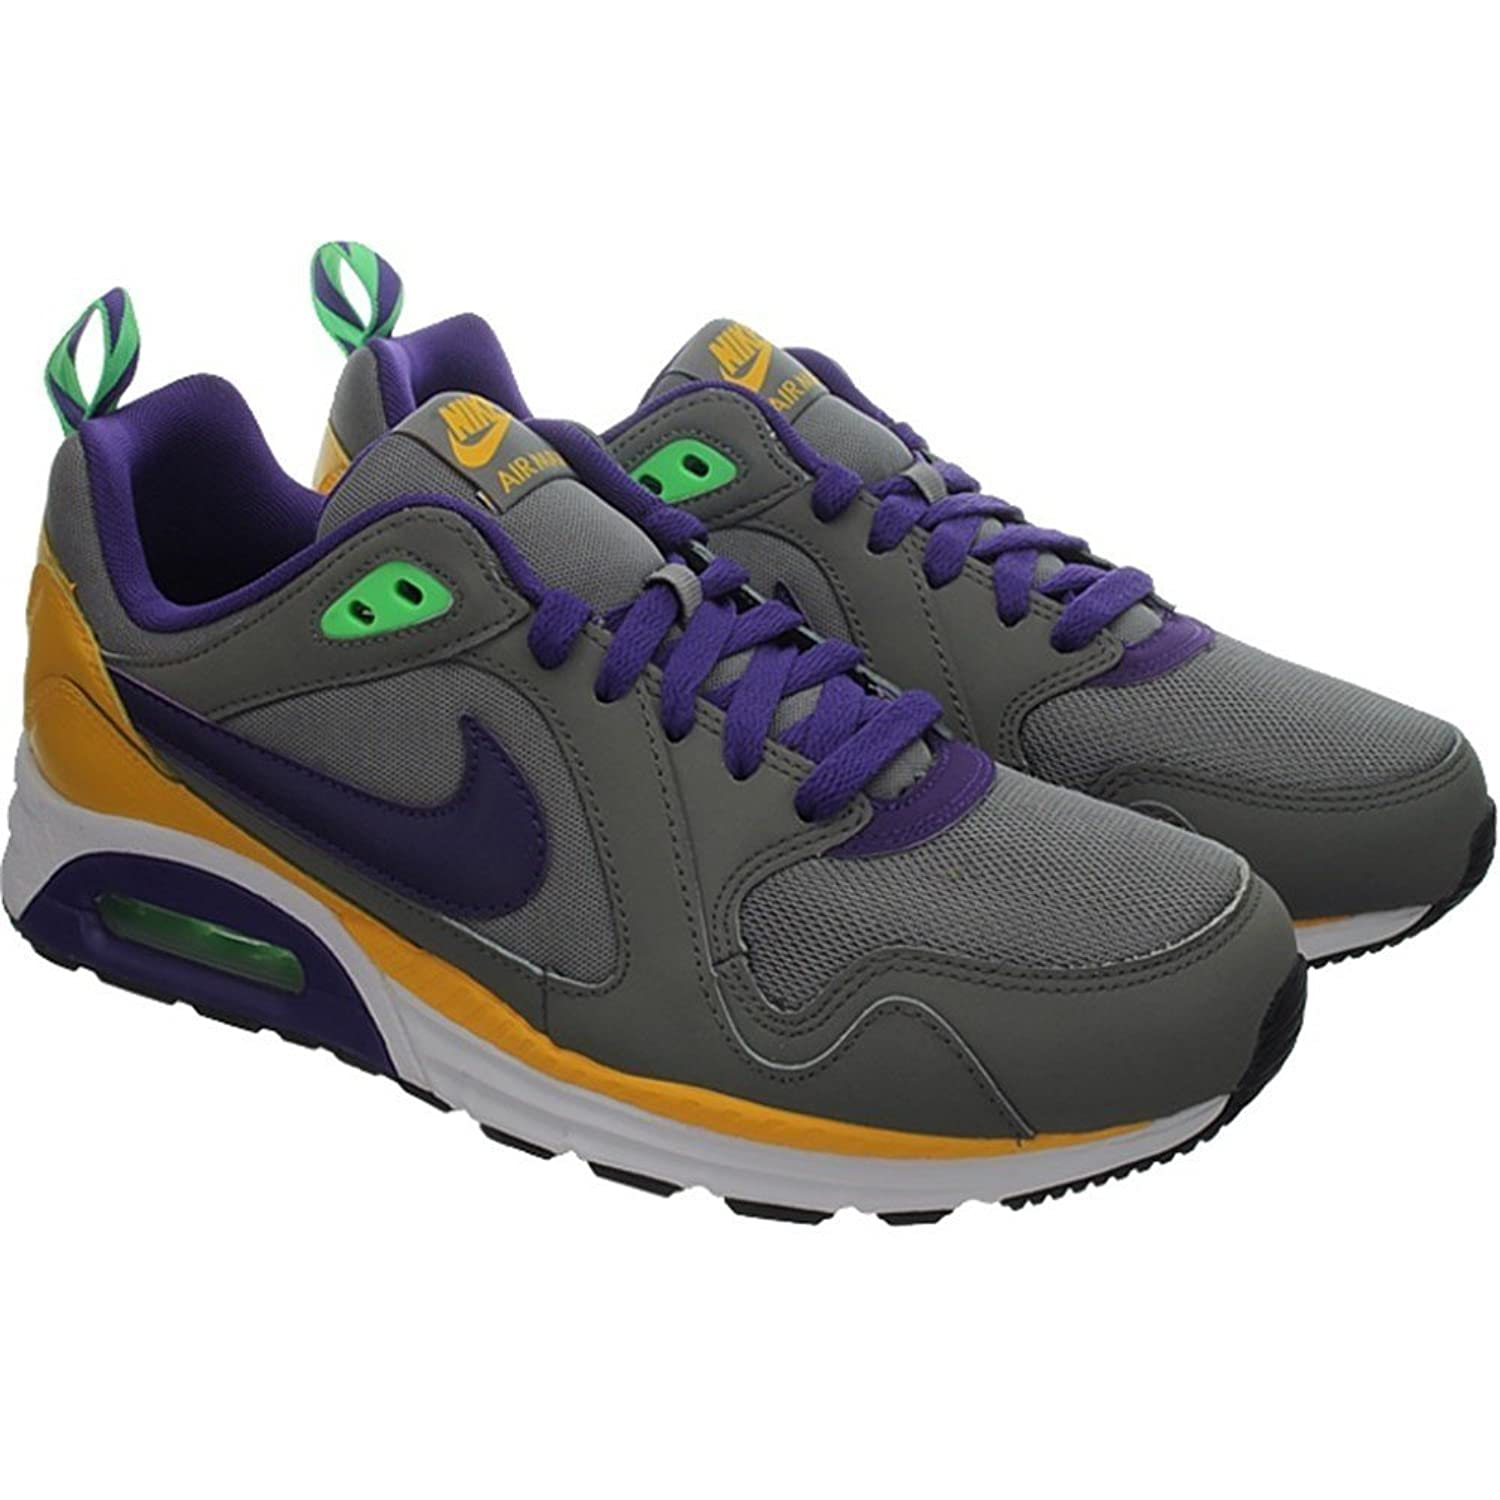 Nike - Air Max Trax - 620990200 - Color: Gris - Size: 40.0 zTCNA